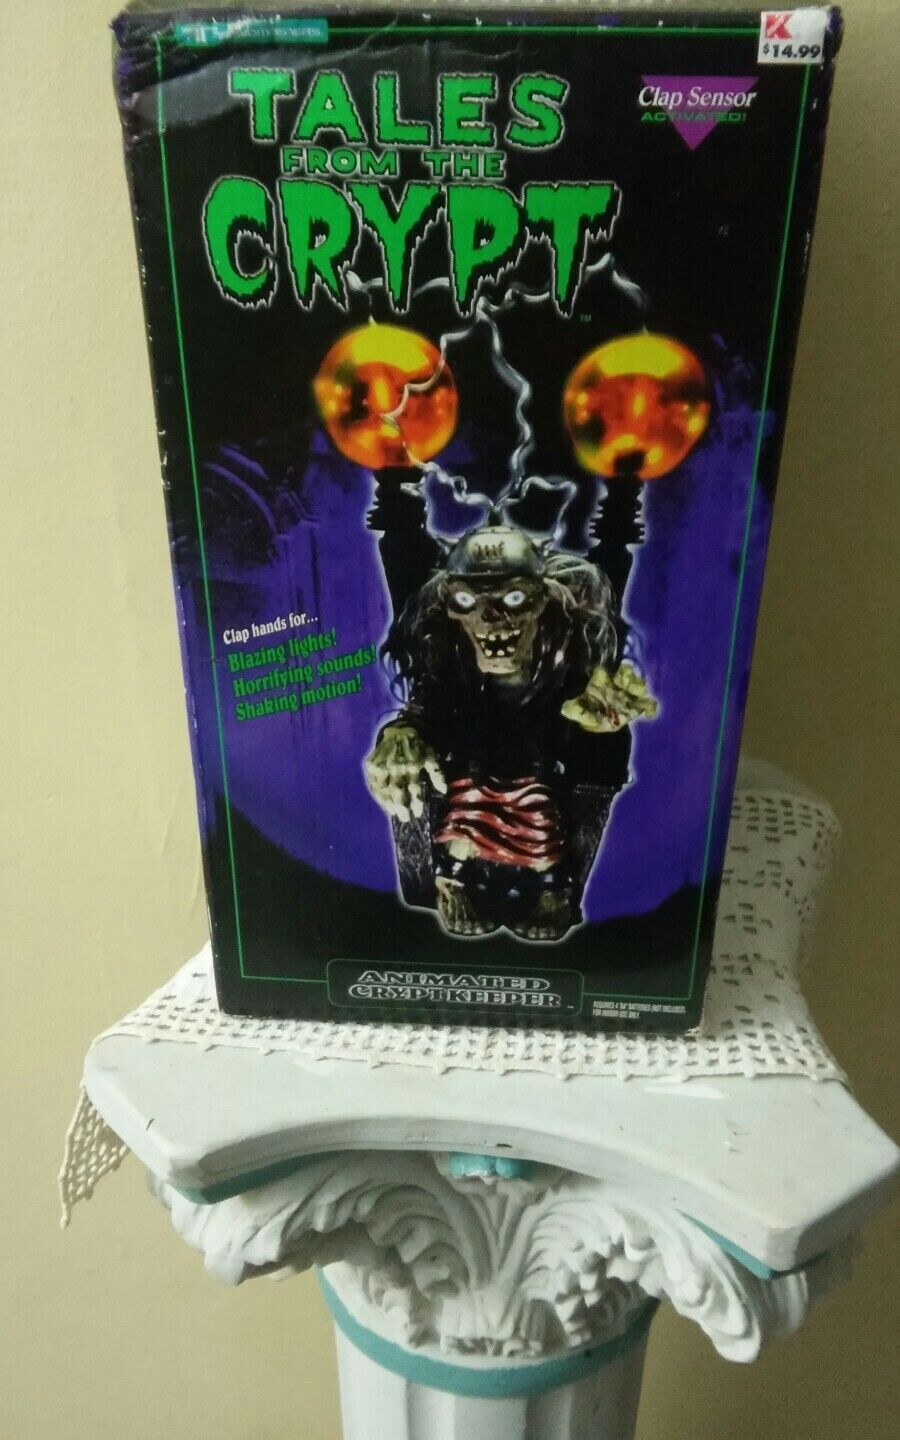 TALES FROM THE CRYPT Electric Chair Animated Crypt Crypt Crypt Keeper 1997 Trendmasters 086fcc